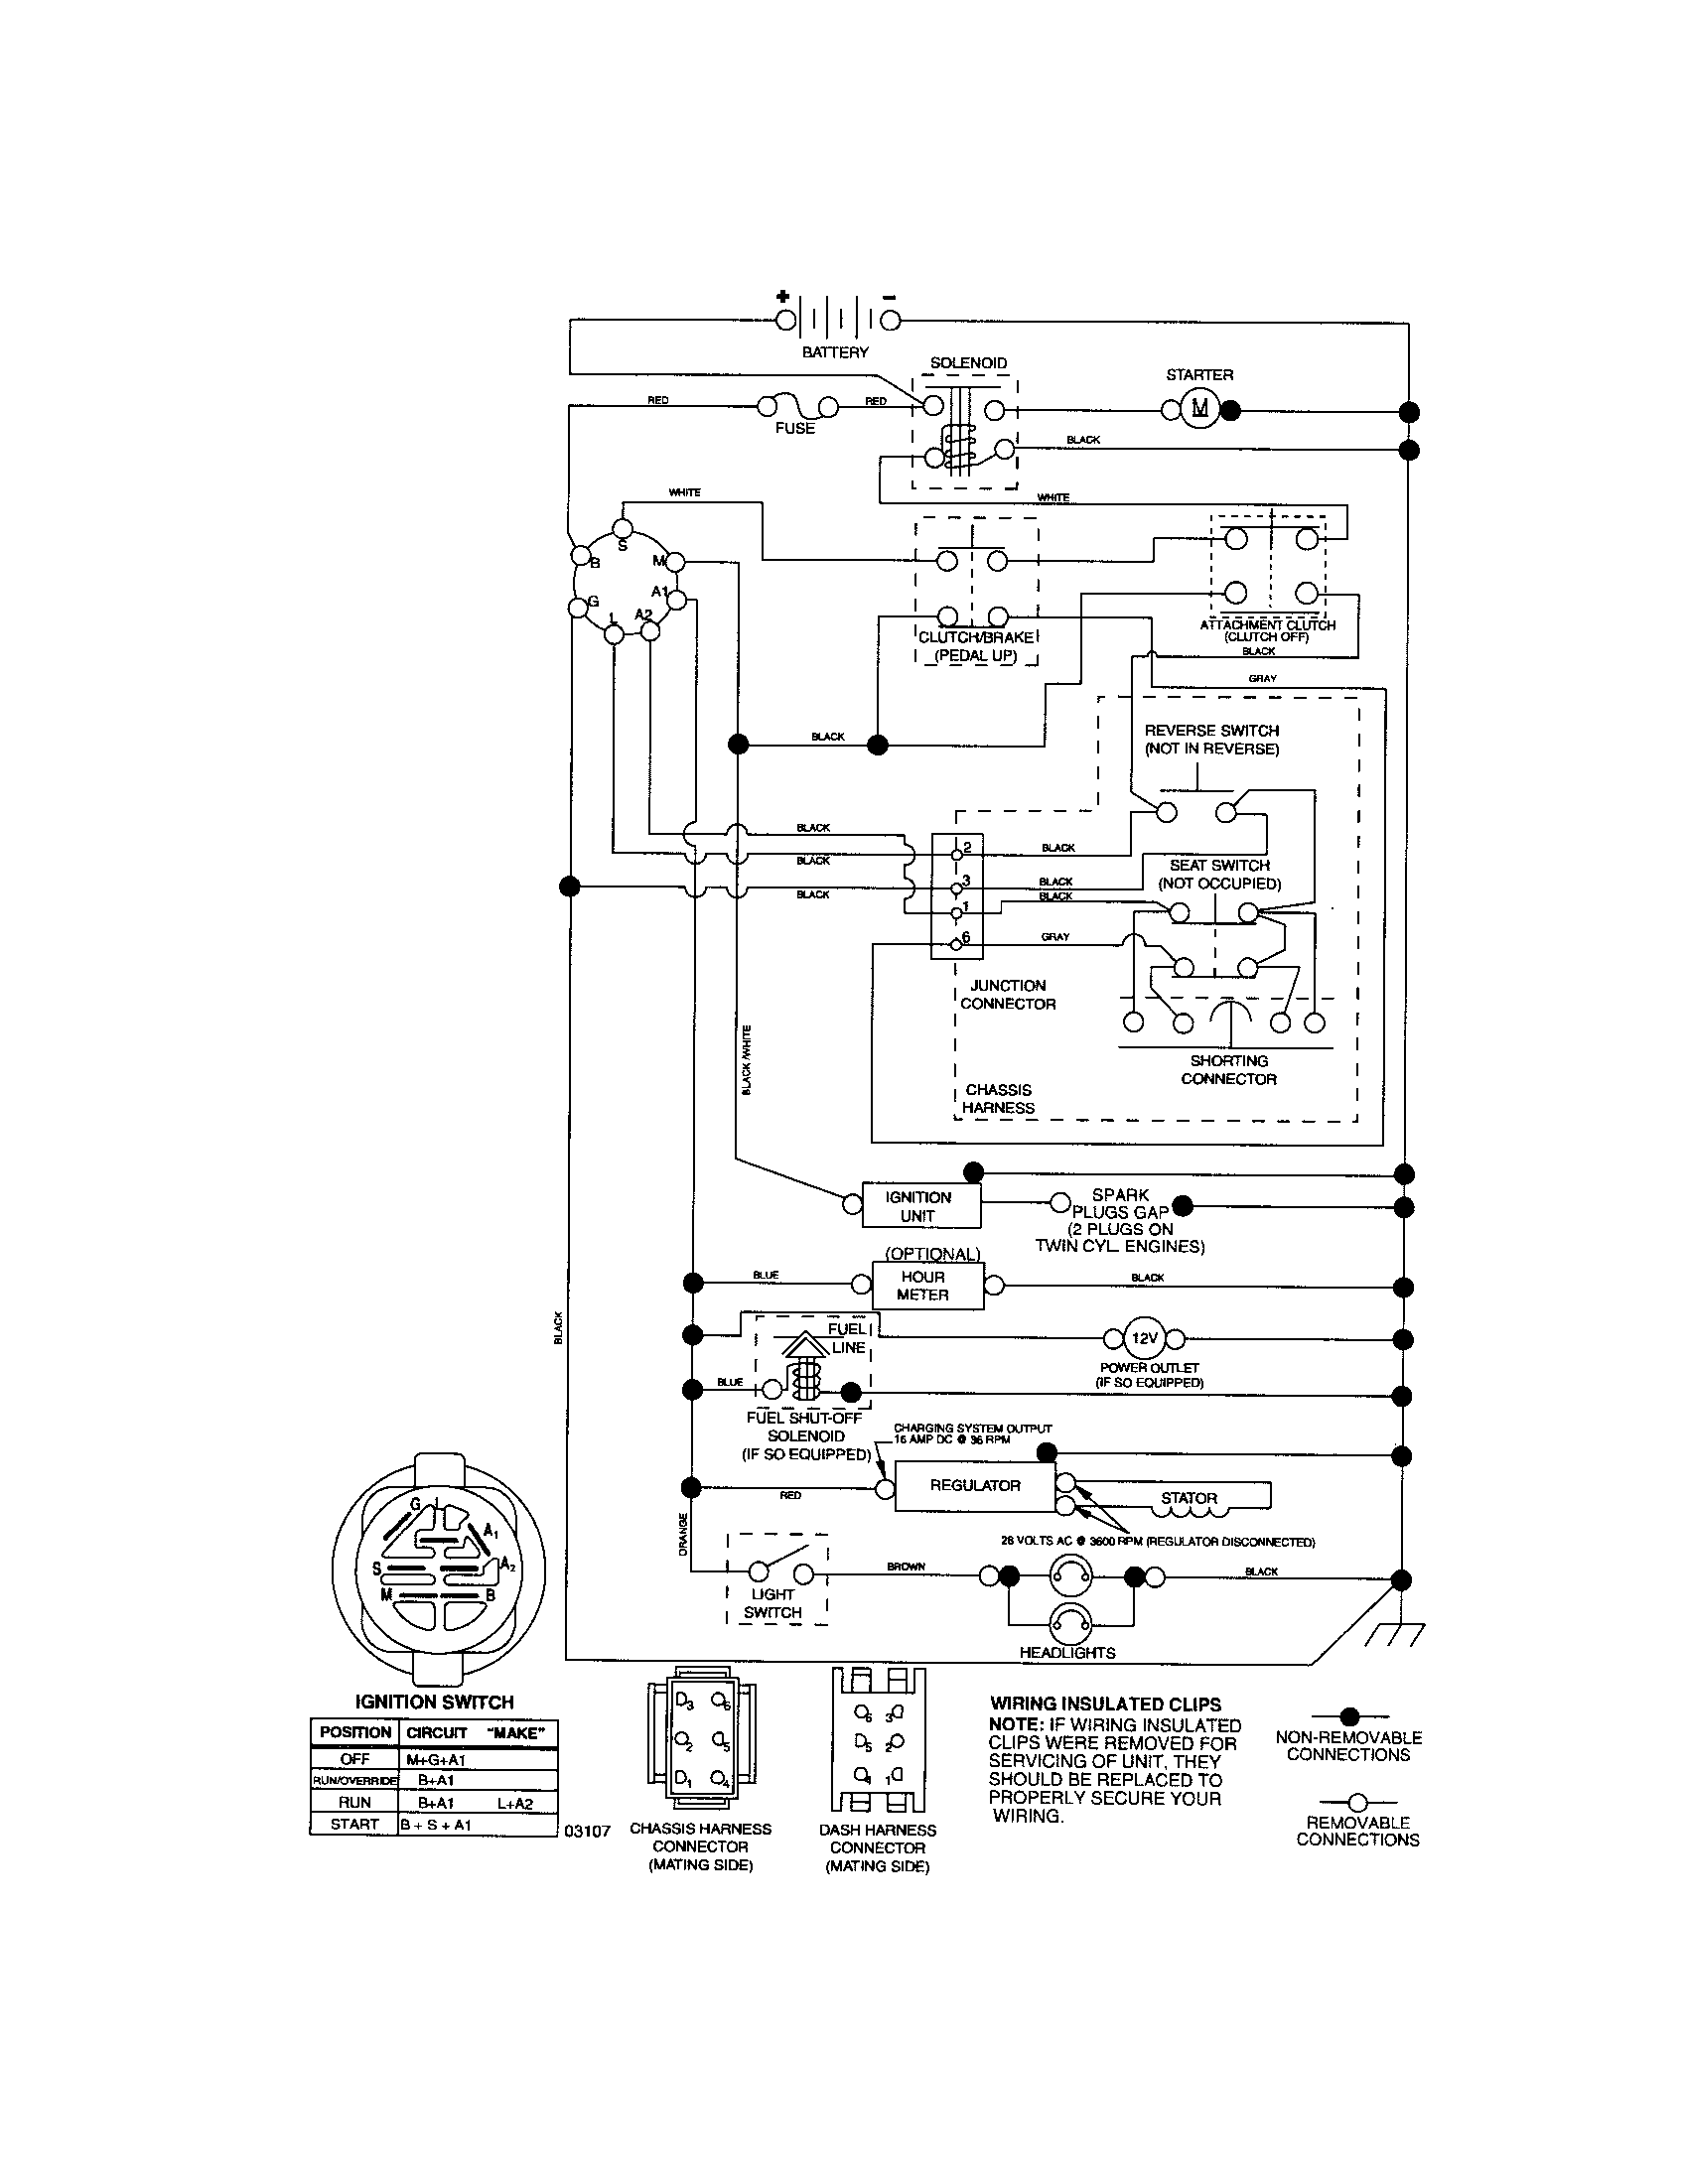 6af5f1447fd13c8443376822ddc1e105 craftsman riding mower electrical diagram wiring diagram Briggs and Stratton Electrical Diagram at gsmx.co